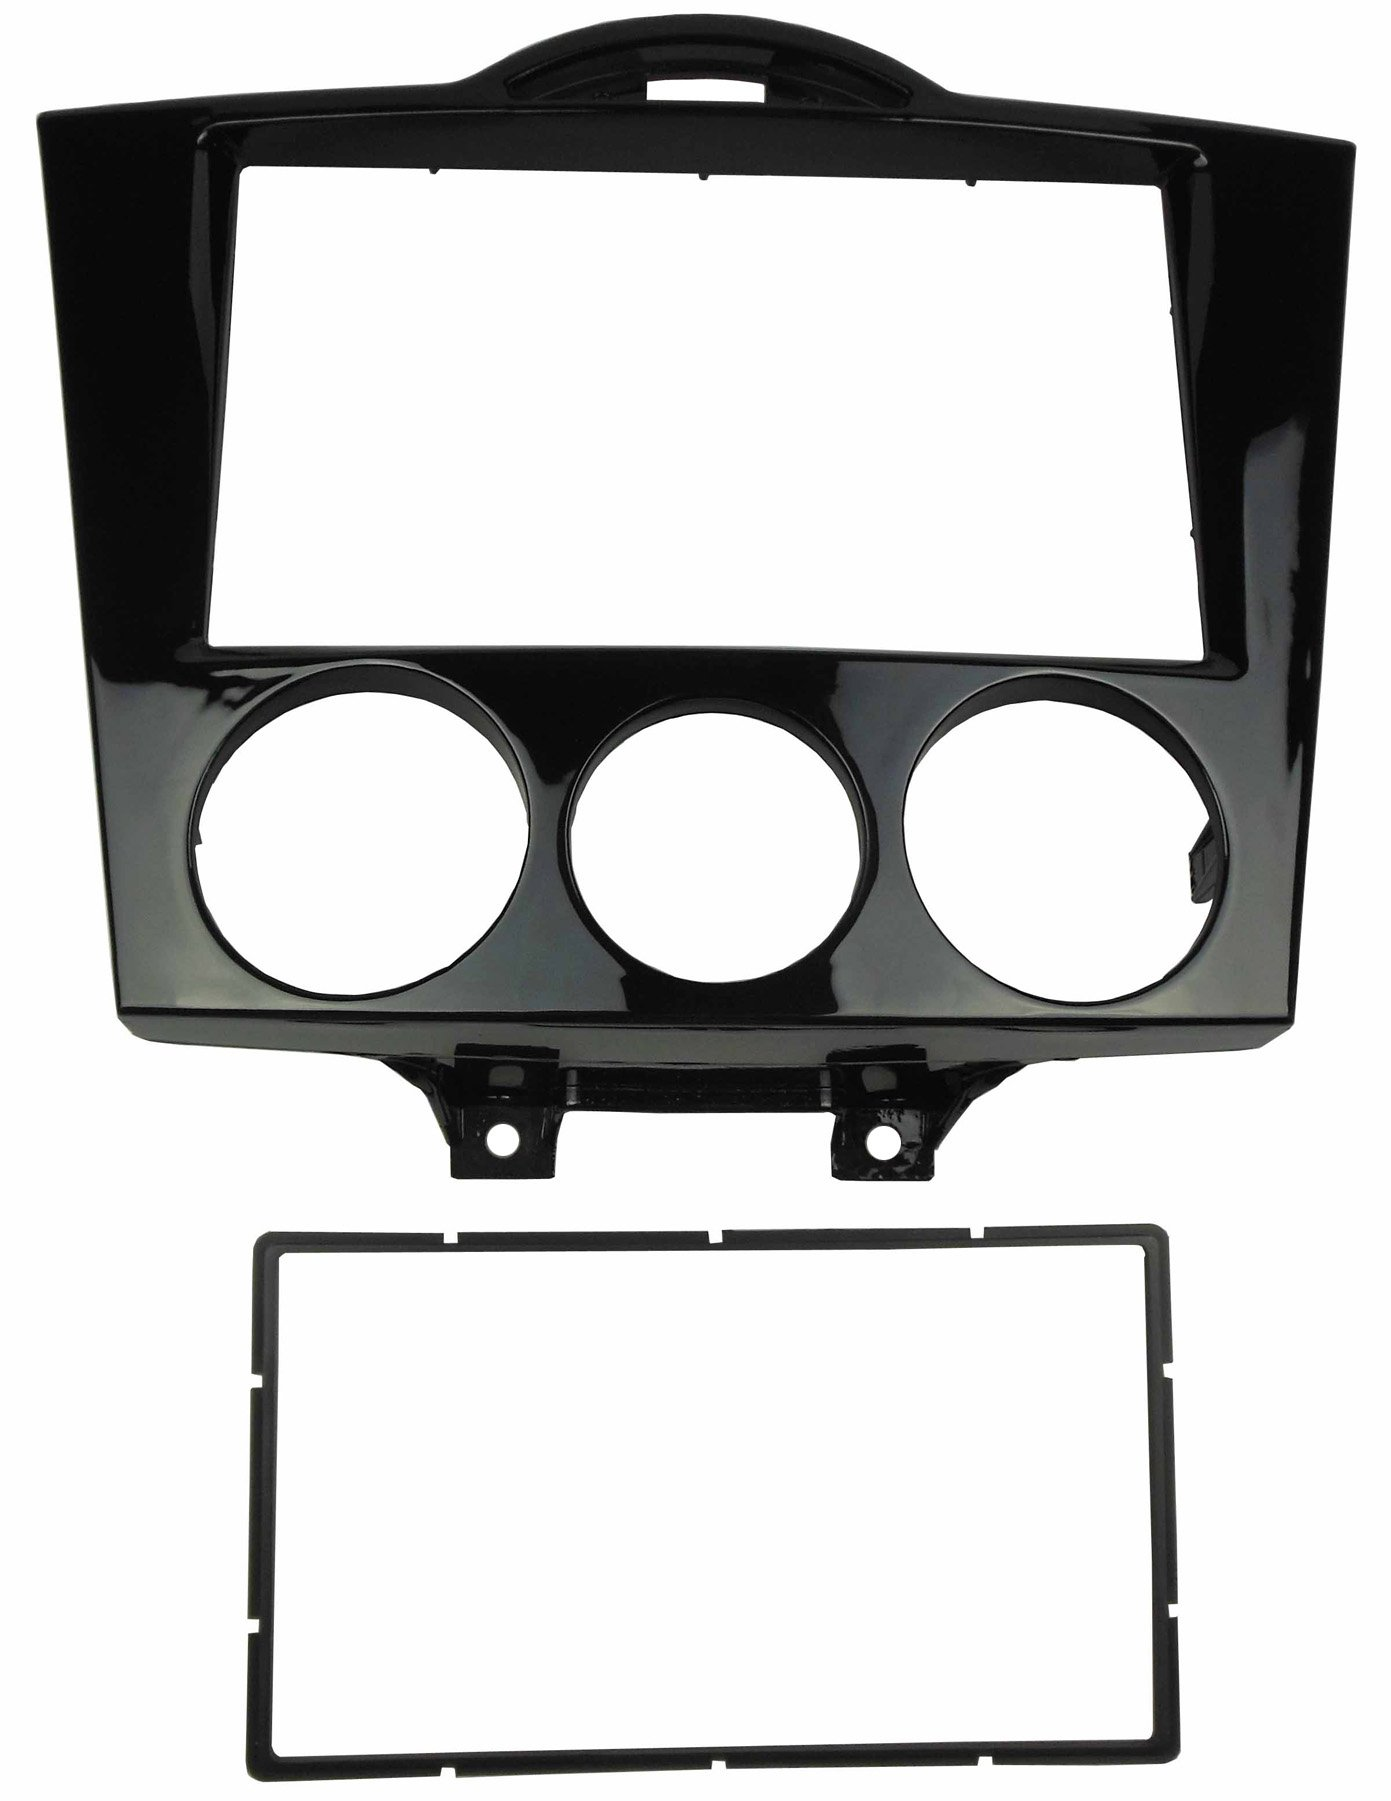 DKMUS Double Din Radio Stereo Dash Installation Mount Trim Kit for Mazda Rx-8 2004-2008 Fascia in Size 173*98mm or 178*102mm Gloss Black